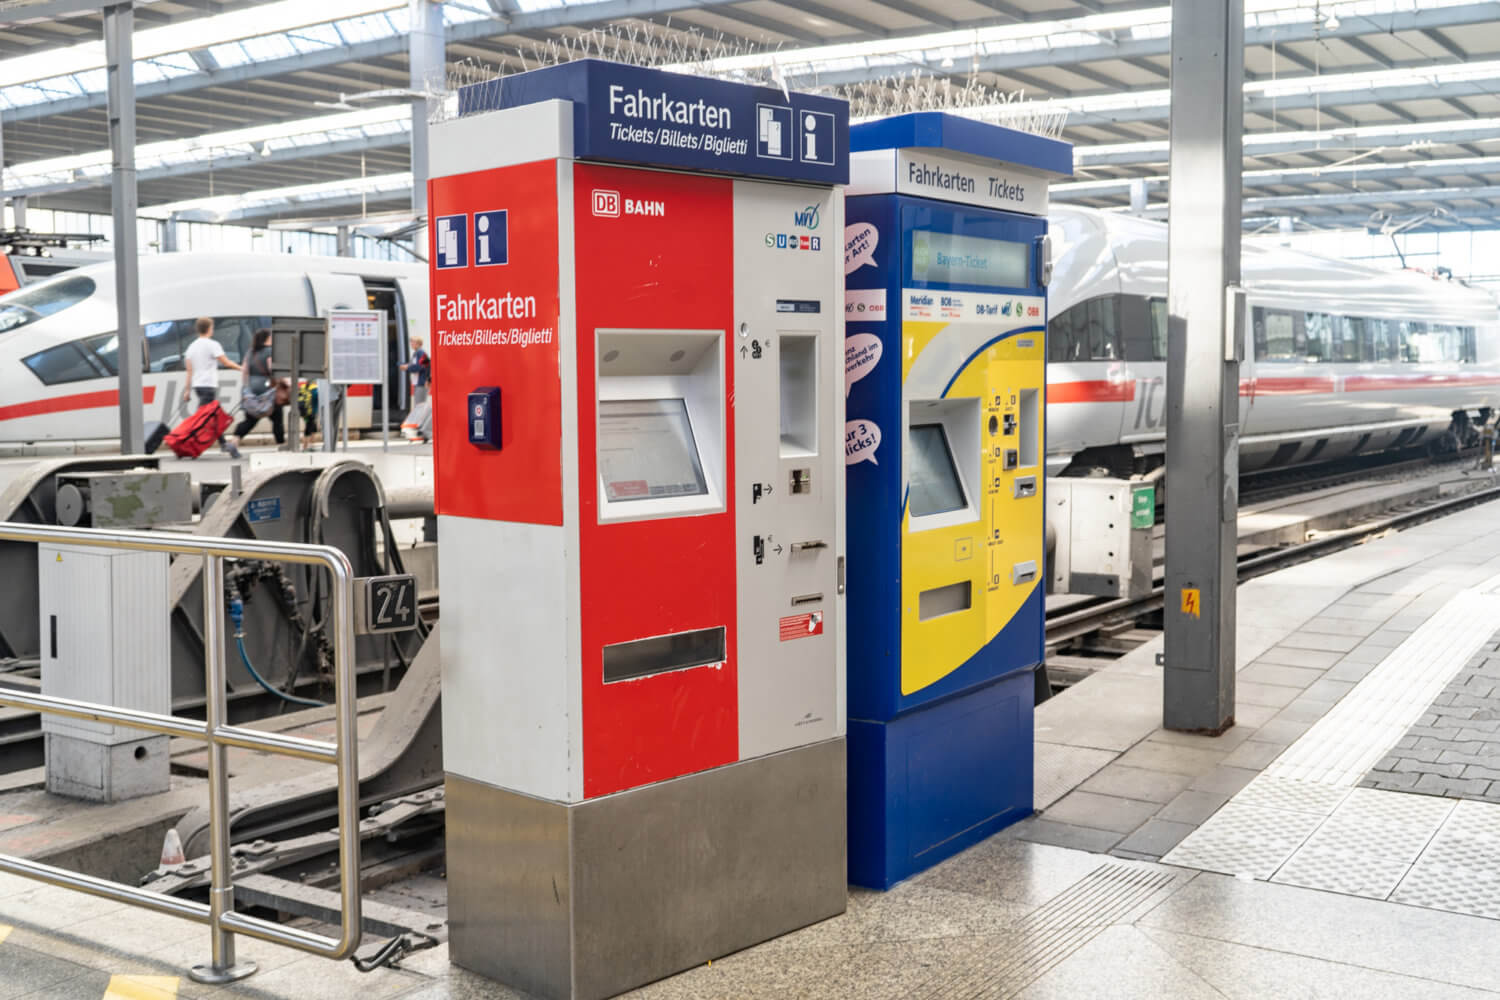 DB Ticket Machines that you can use to buy tickets for your Munich to Salzburg Day Trip